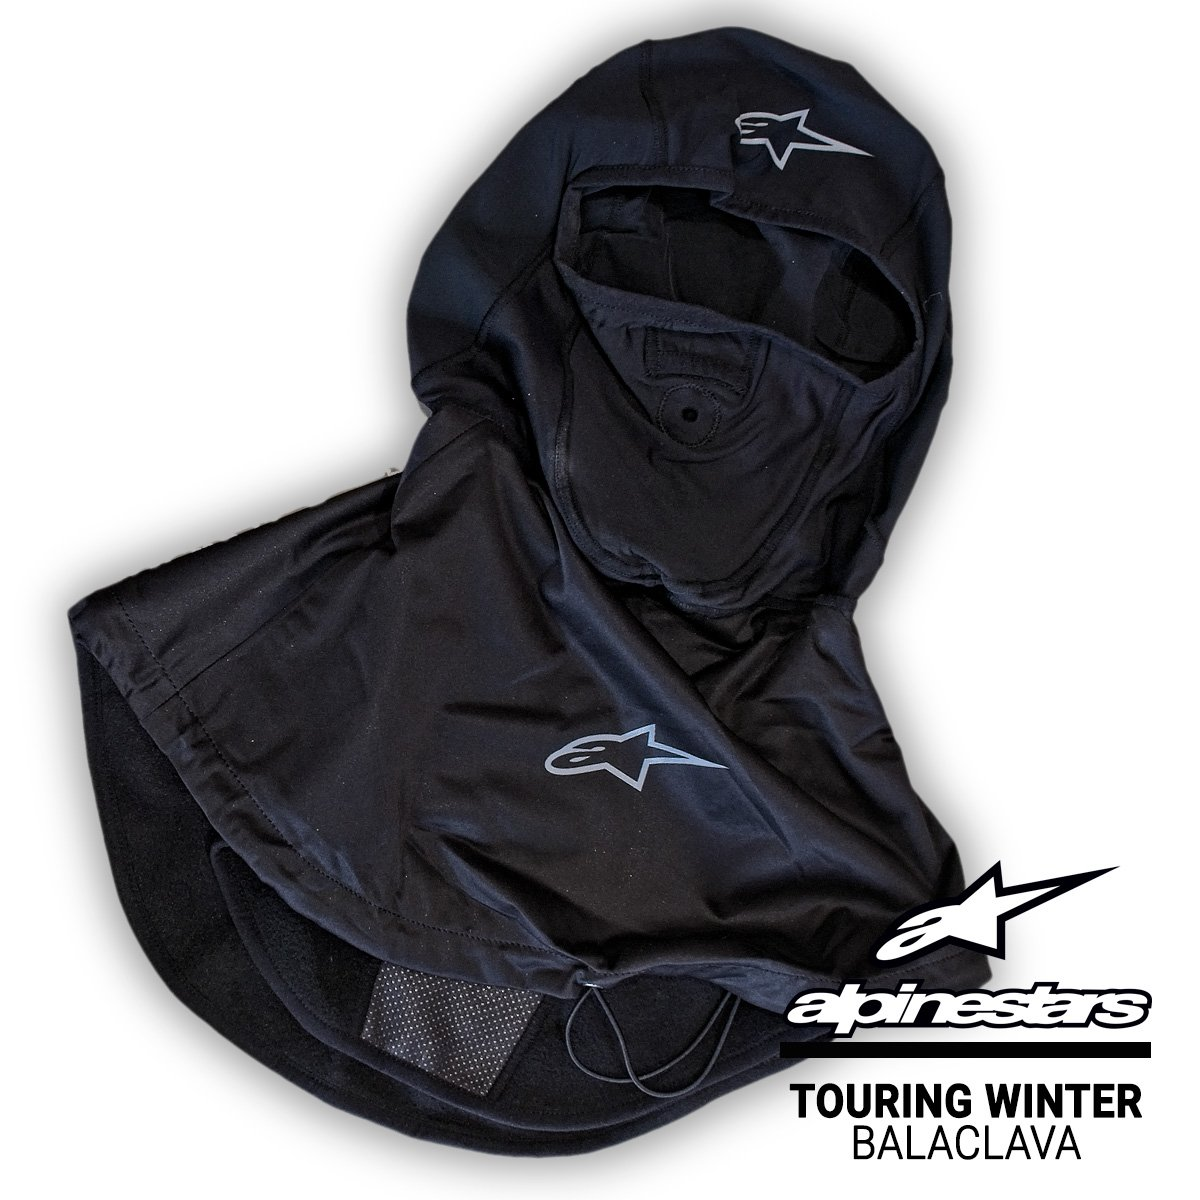 Winter motorcycle clothing accessories from Alpinestars The Touring Winter Balaclava